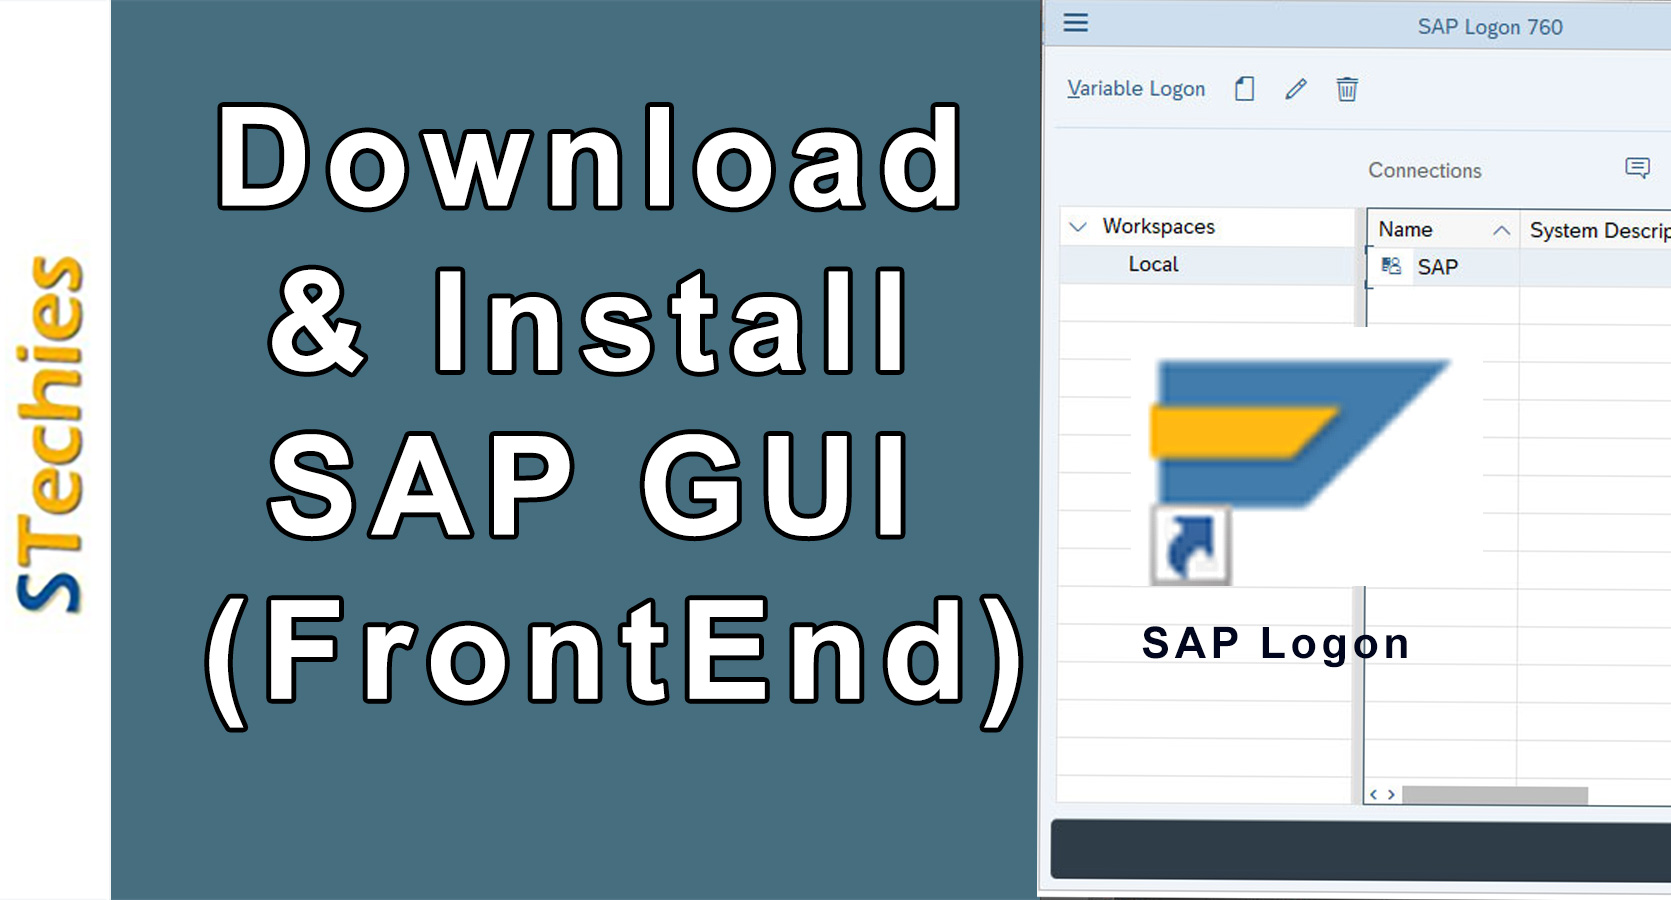 sap software download free for windows 8